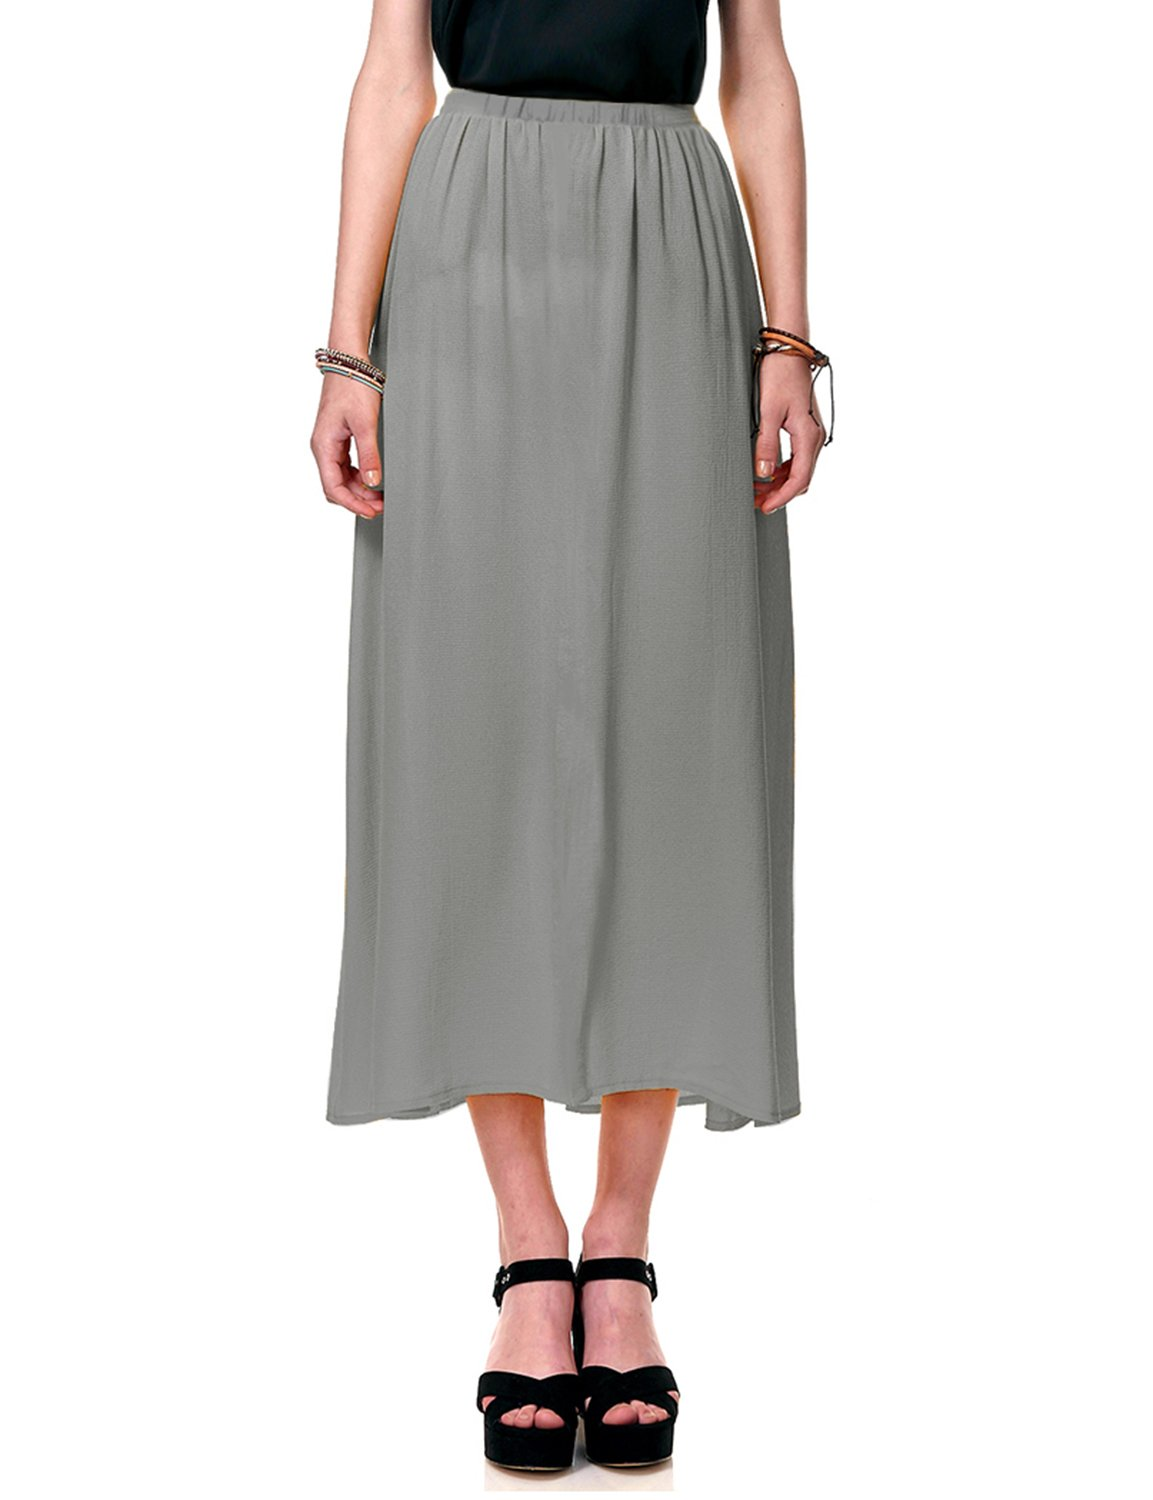 Regna X Boho for Women Maxi Comfort fit Beach wear Grey Extra Large Full Long Chiffon Dress Skirt